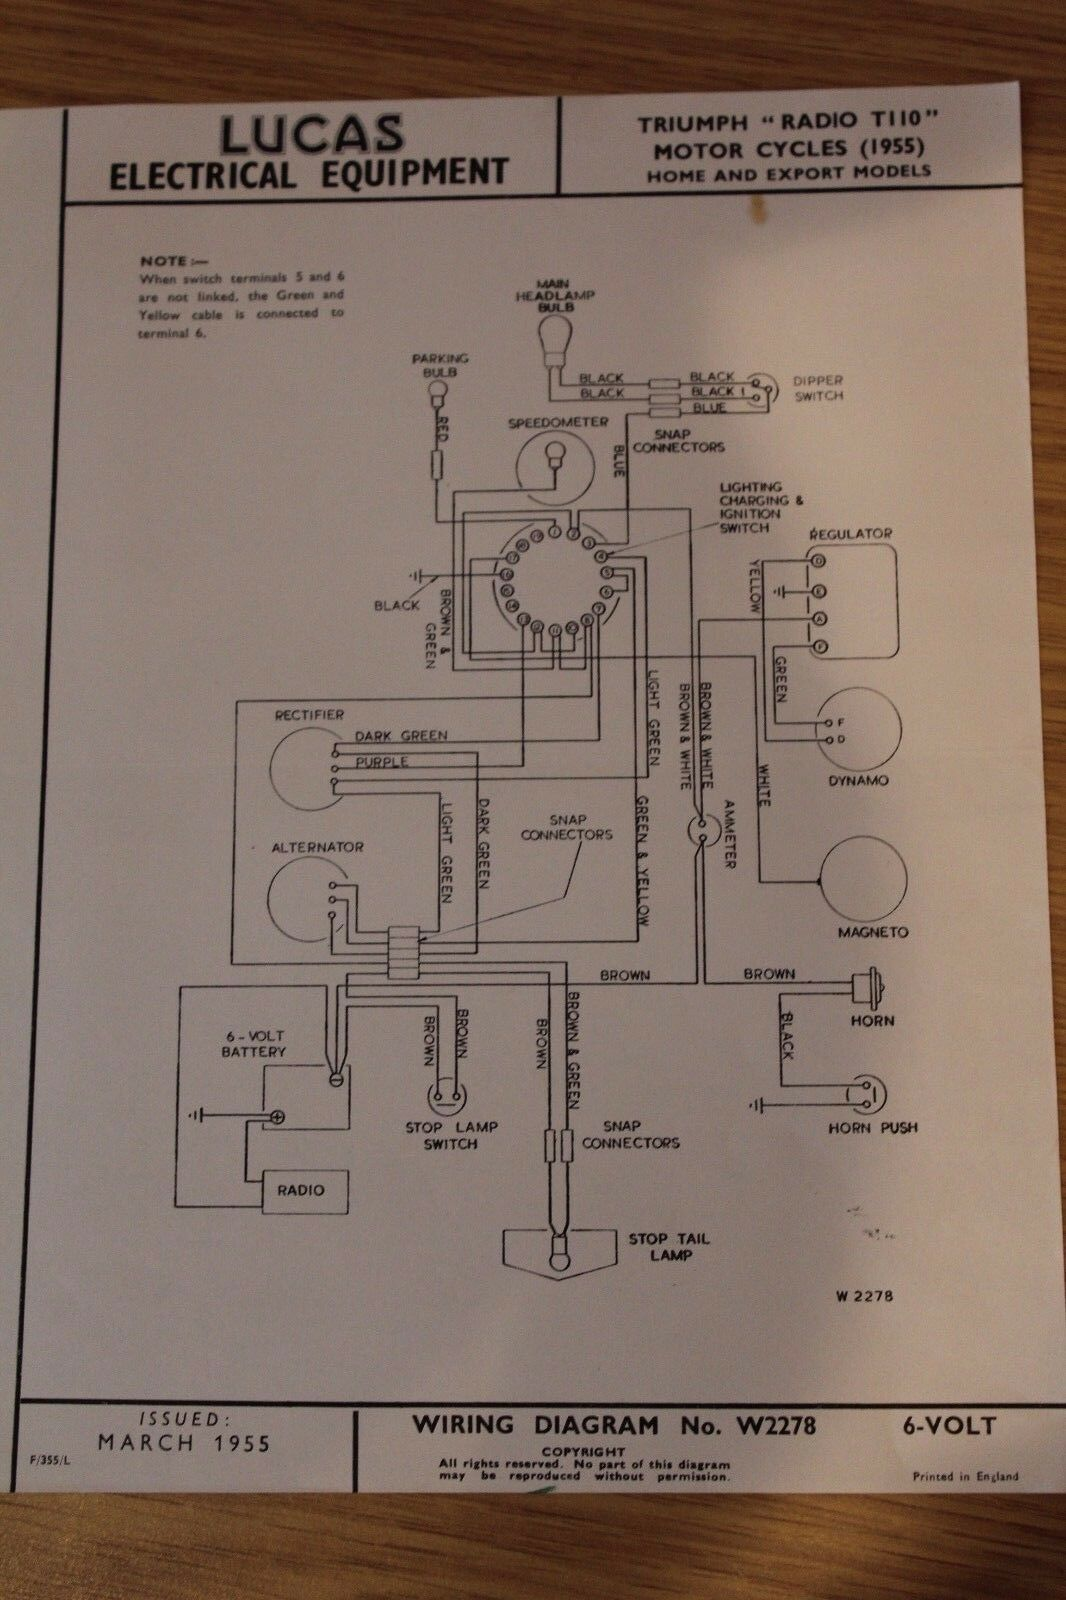 Triumph Radio T110 1955 Lucas Electrical Equipment Original Wiring 6 Volt Battery Diagram Norton Secured Powered By Verisign